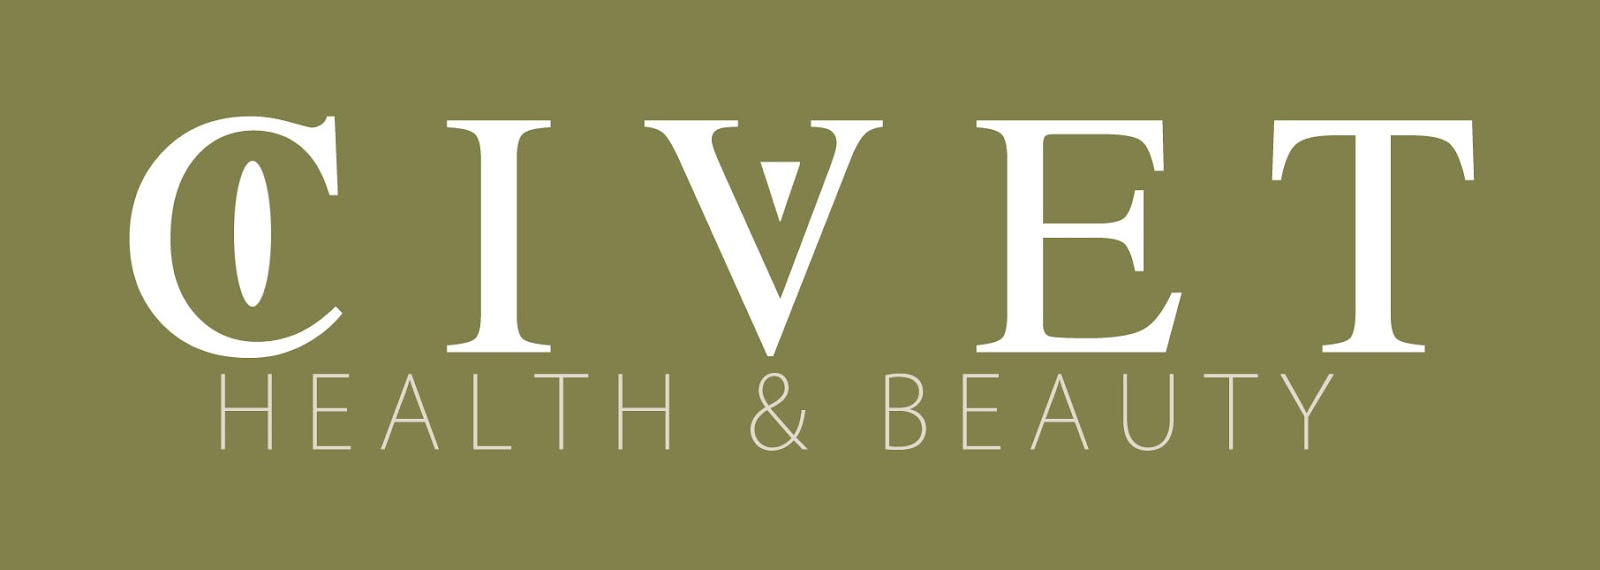 Civet health and beauty